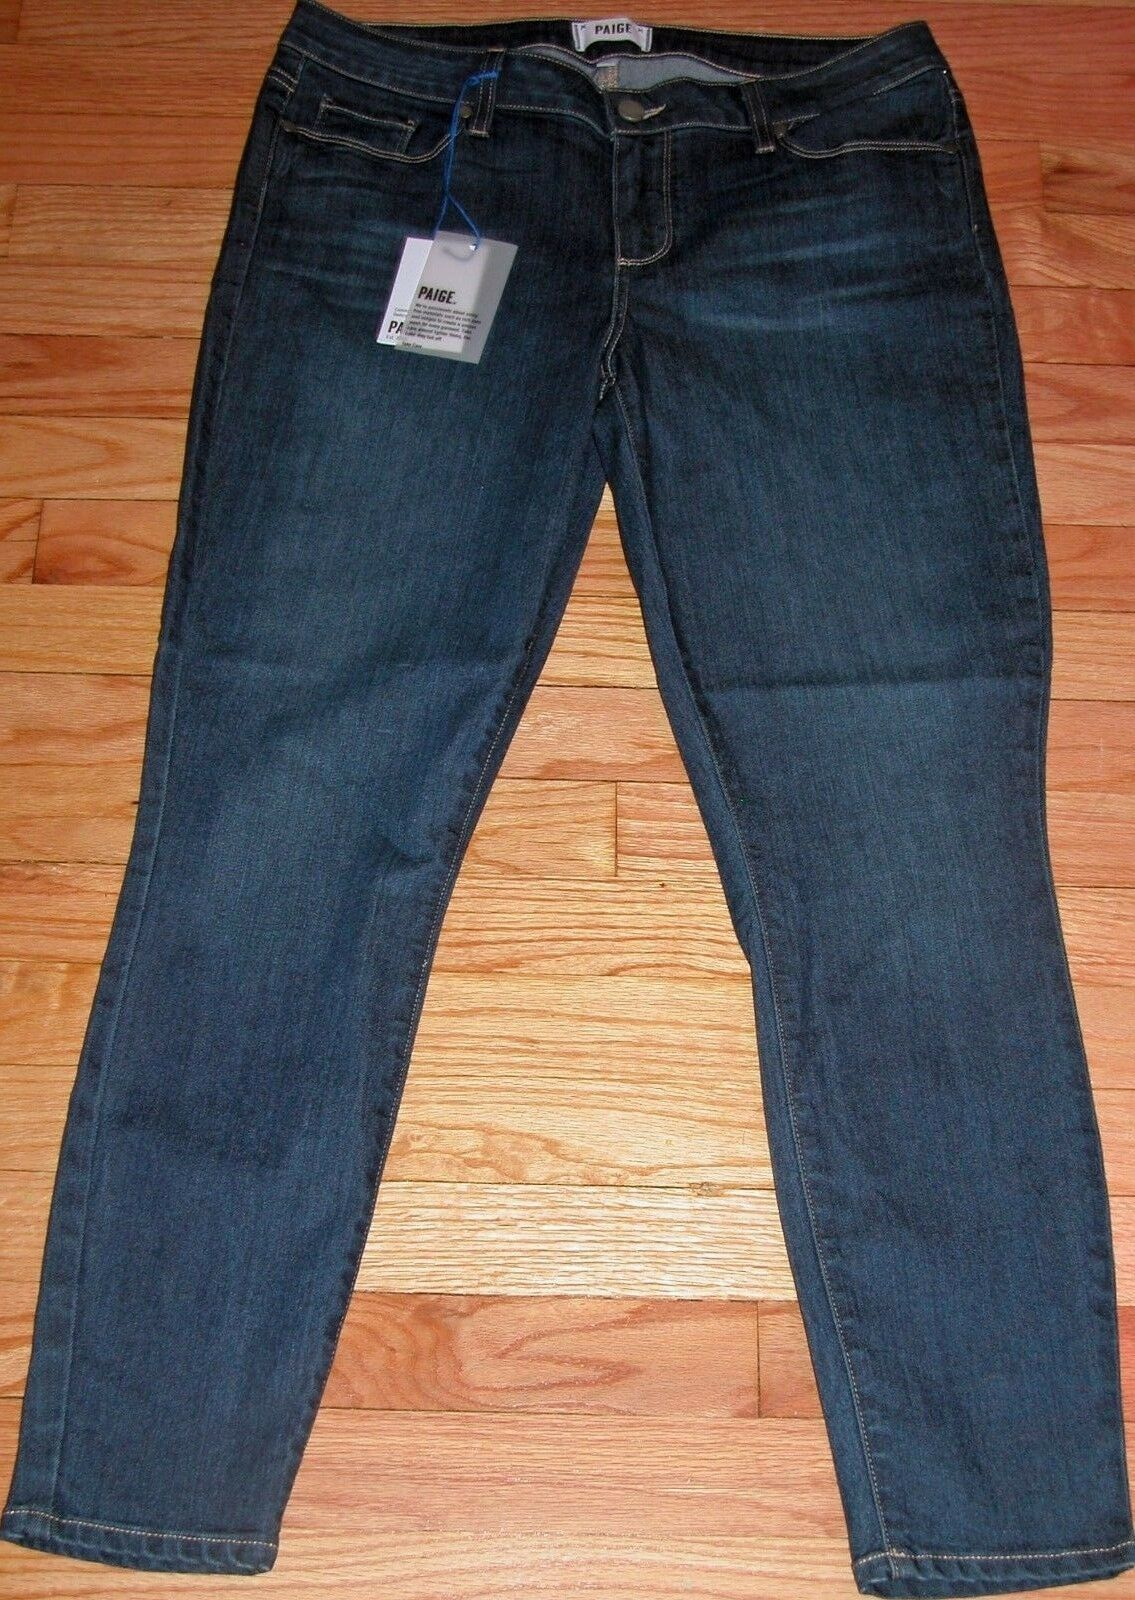 PAIGE JEANS VERDUGO ANKLE TAMI WOMEN'S SIZE 32